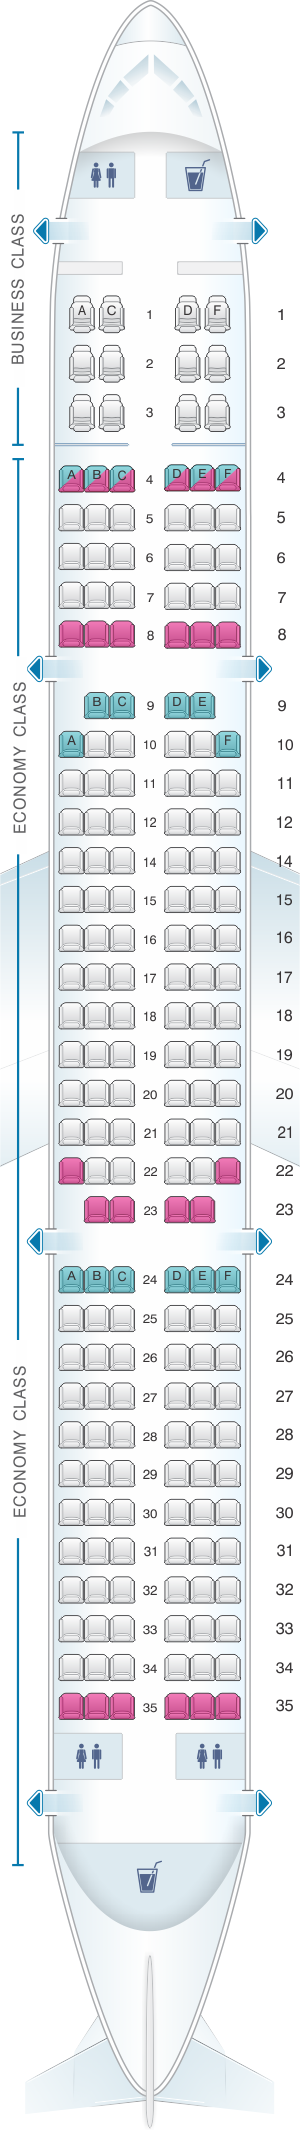 Seat map for Avianca Airbus A321